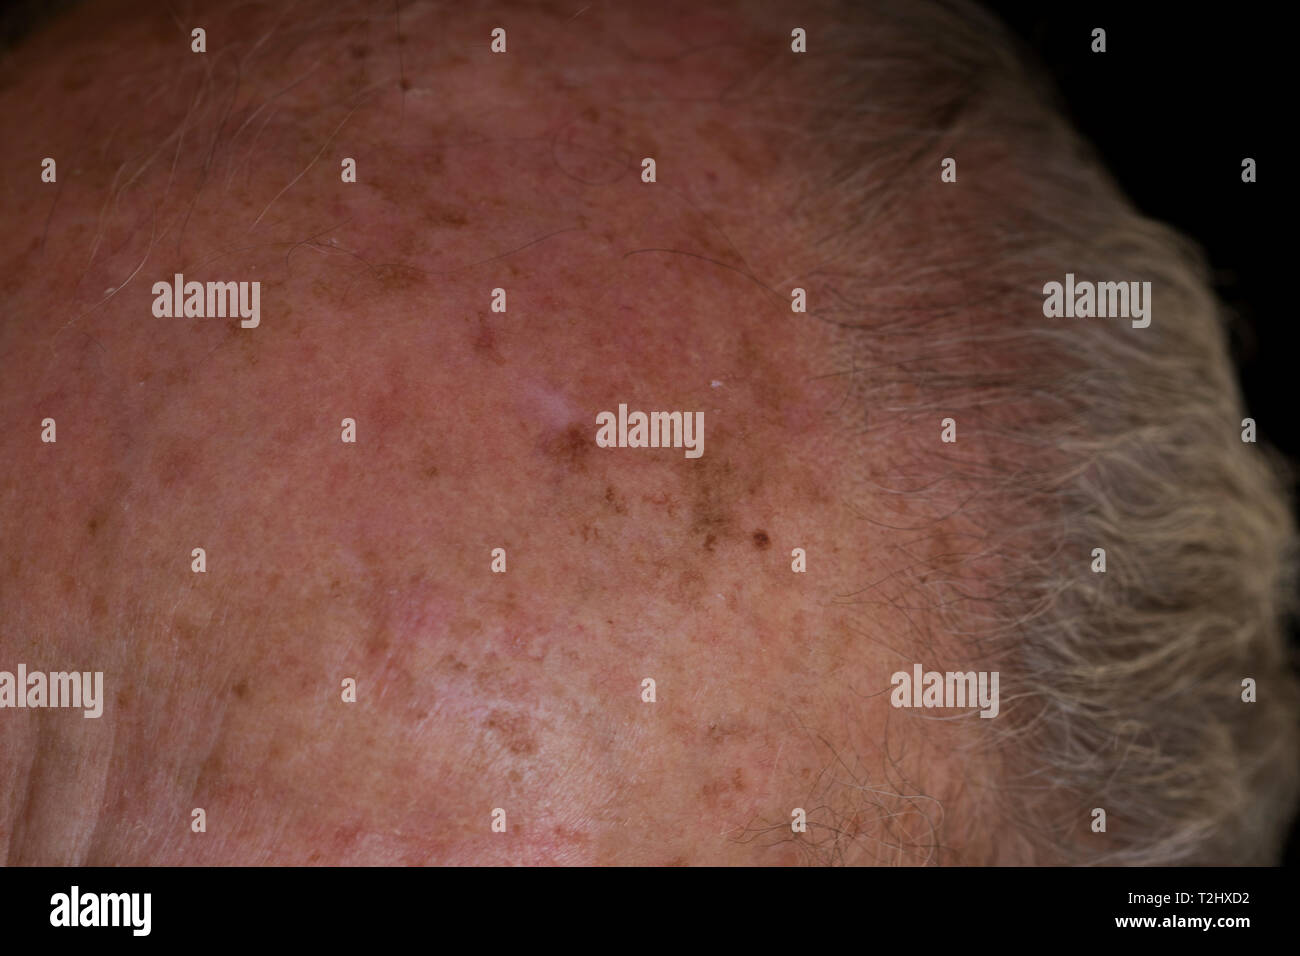 Skin Cancer Melanin Cells High Resolution Stock Photography And Images Alamy